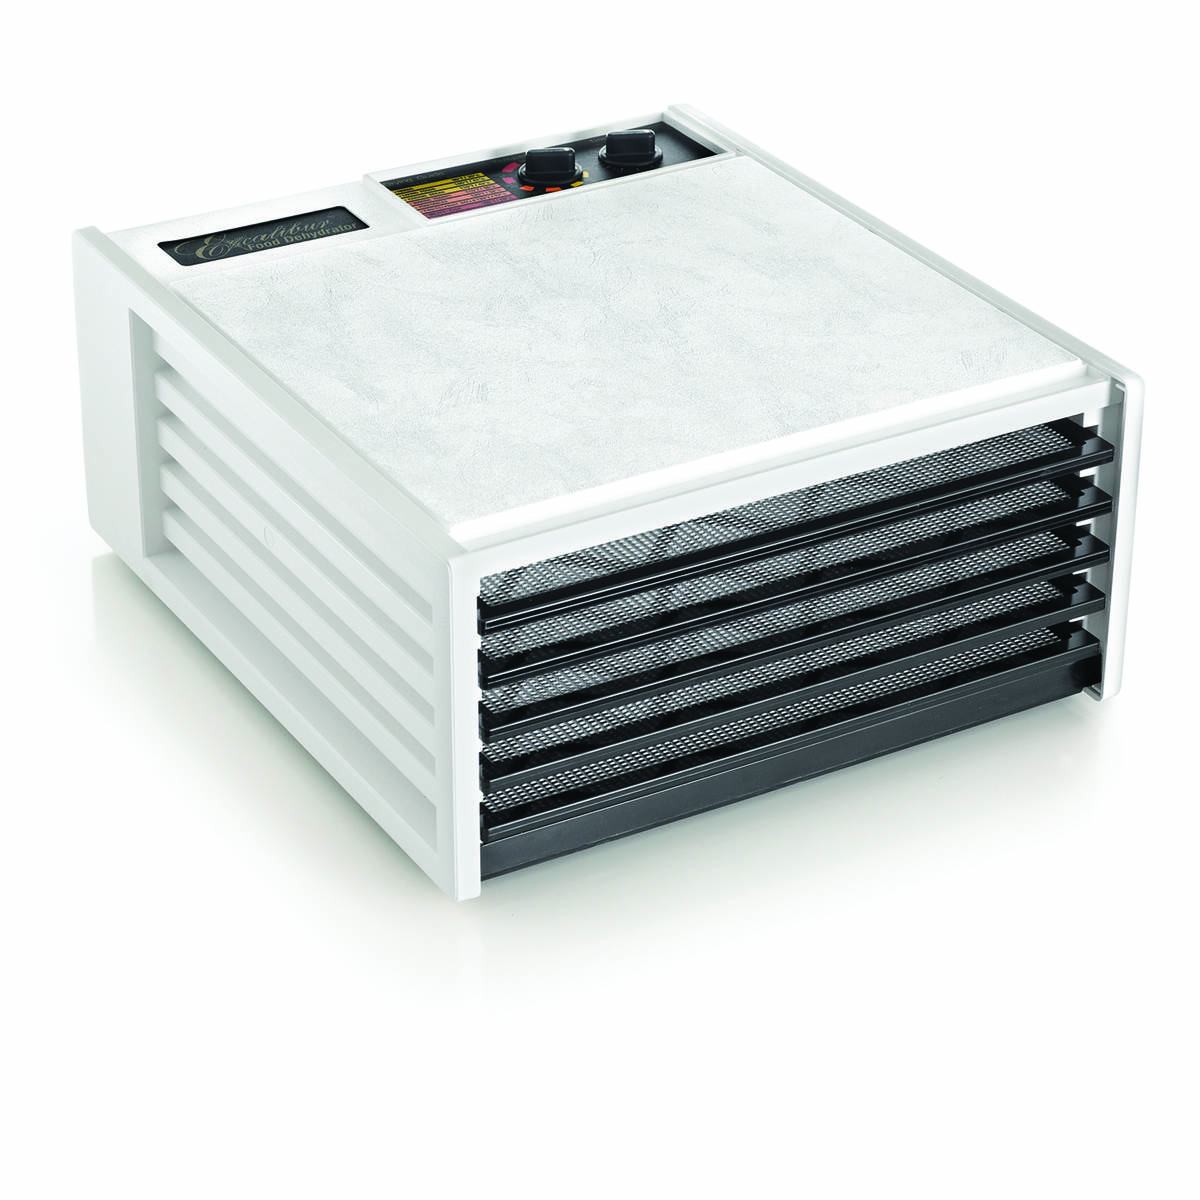 Excalibur food dehydrator 4526T white back view